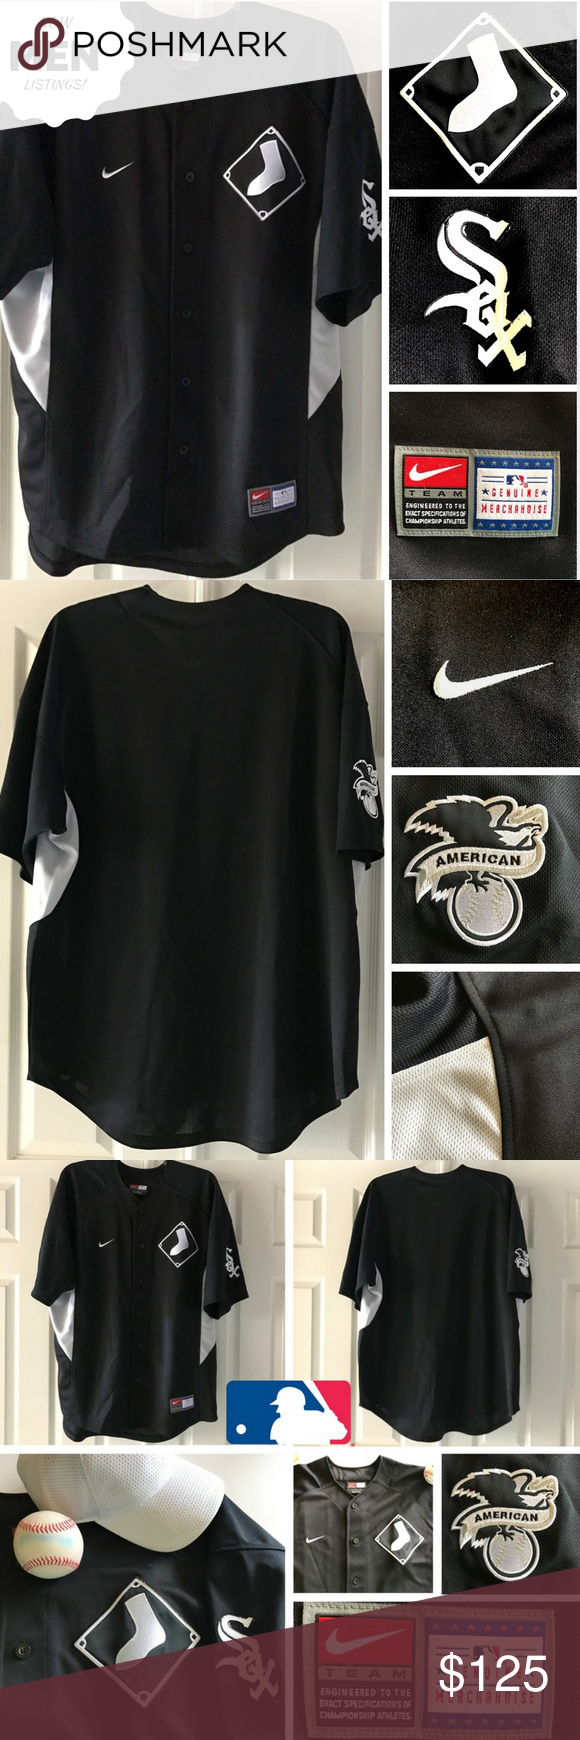 "🆕 White Sox Jersey Official MLB Merchandise, Nike Hit it out of the park with this Chicago White Sox jersey! Official MLB merchandise by Nike.   * Size Lg (approx 27"" flat, armpit to armpit   34"" long, neck to back hem) * 100% polyester * Full 6-button f"